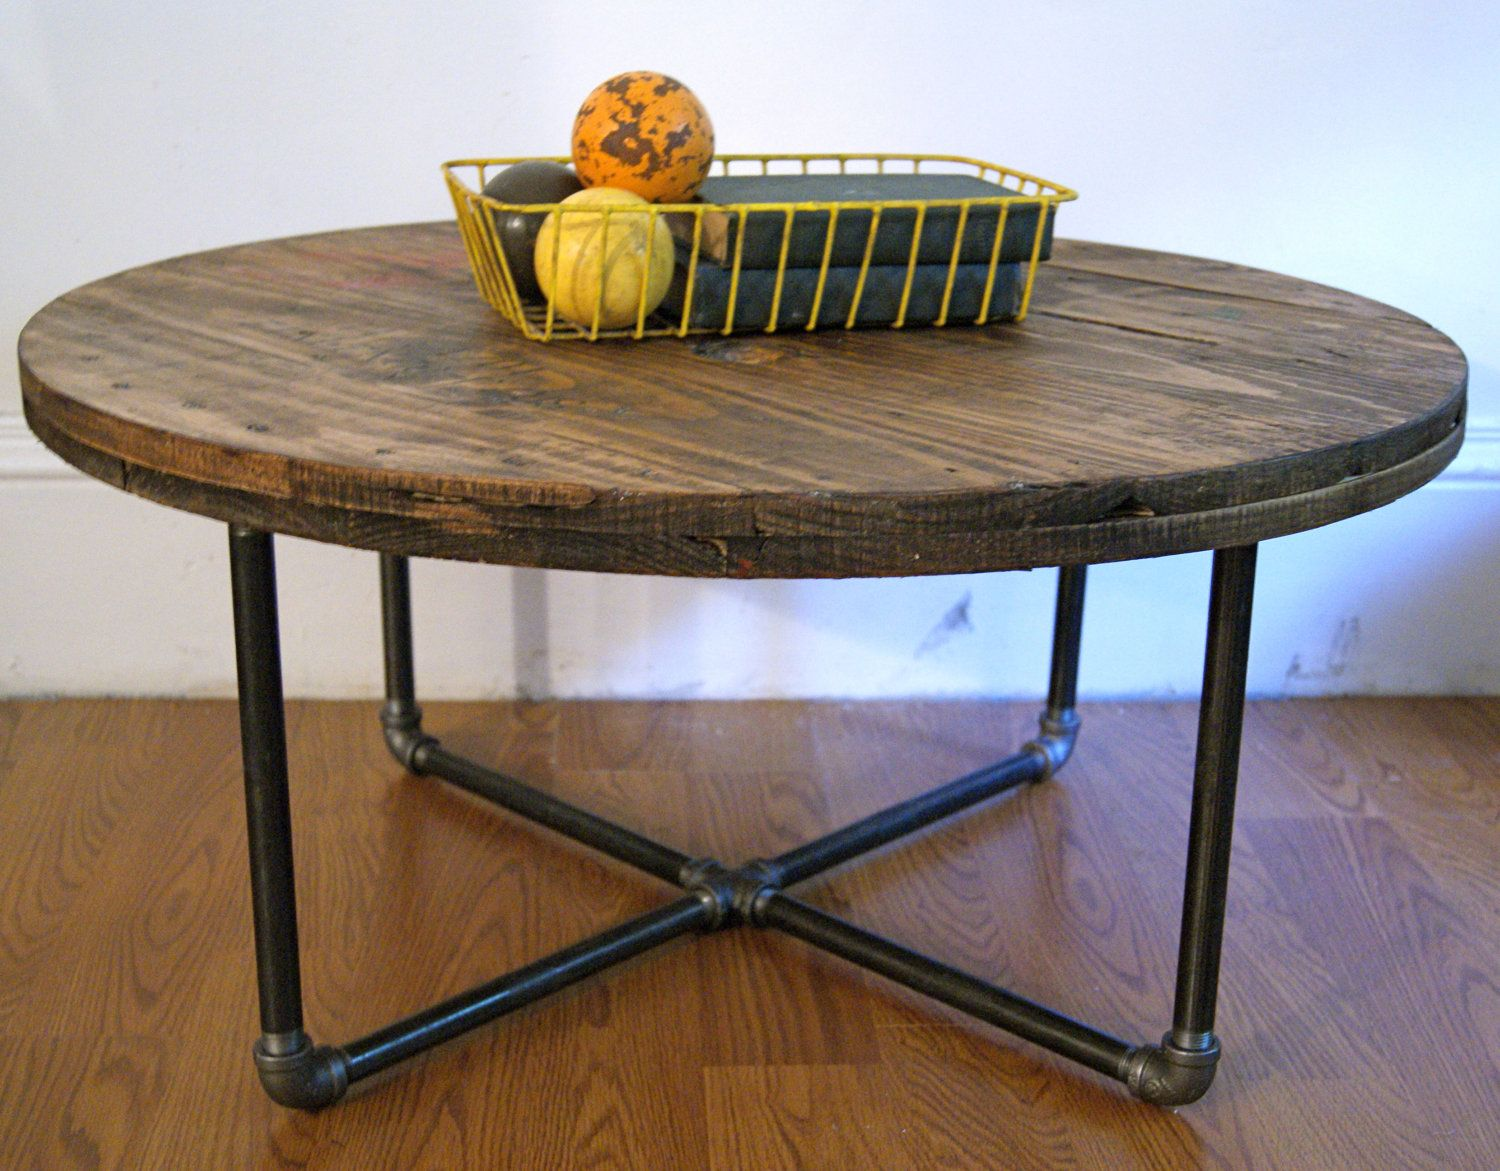 "30"" Diameter Reclaimed Wood Spool Coffee Table Reserved $320 00"